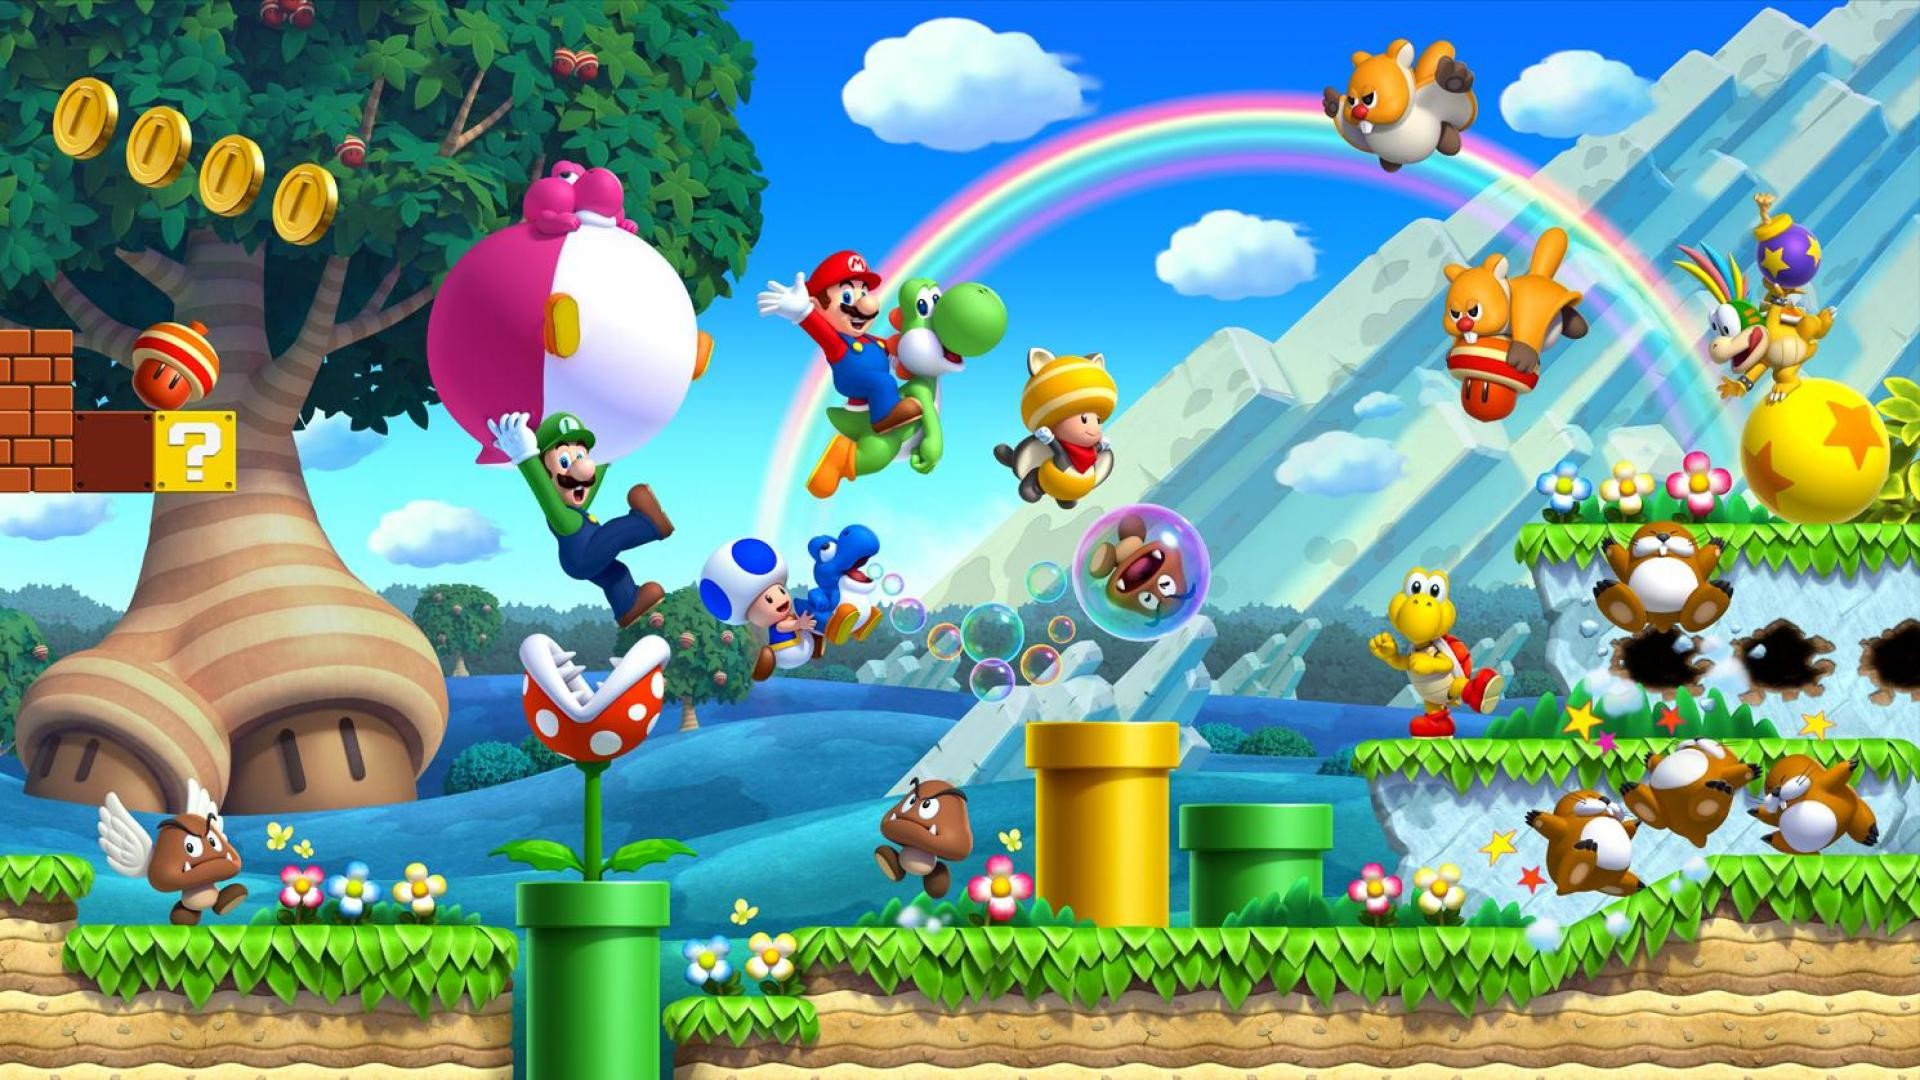 Super Mario Bros themed Wallpaper for your PC, tablet or mobile phone